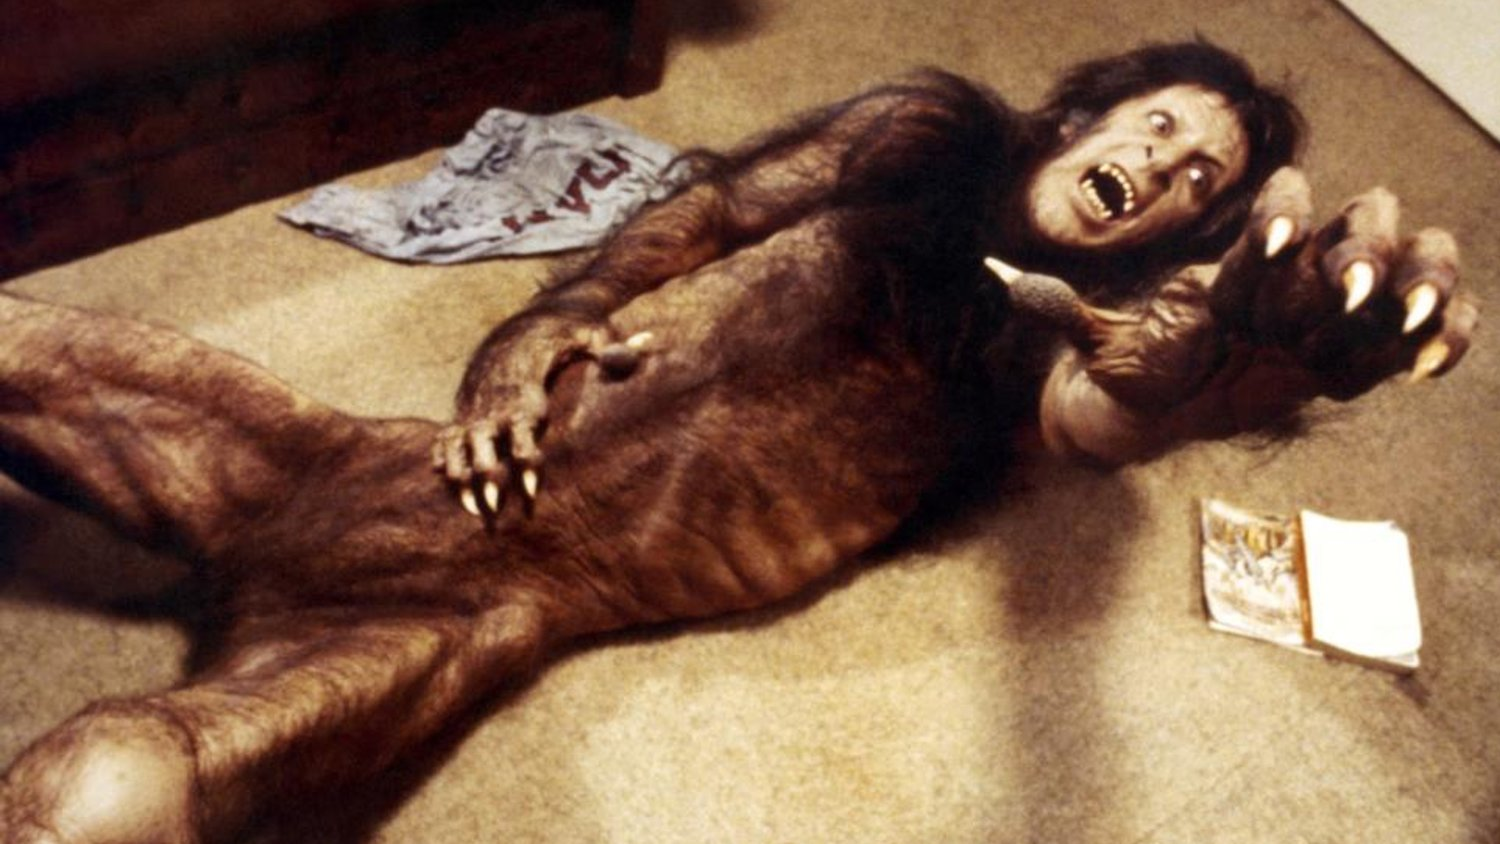 David Naughton transforms into a werewolf in An American Werewolf in London (1981)